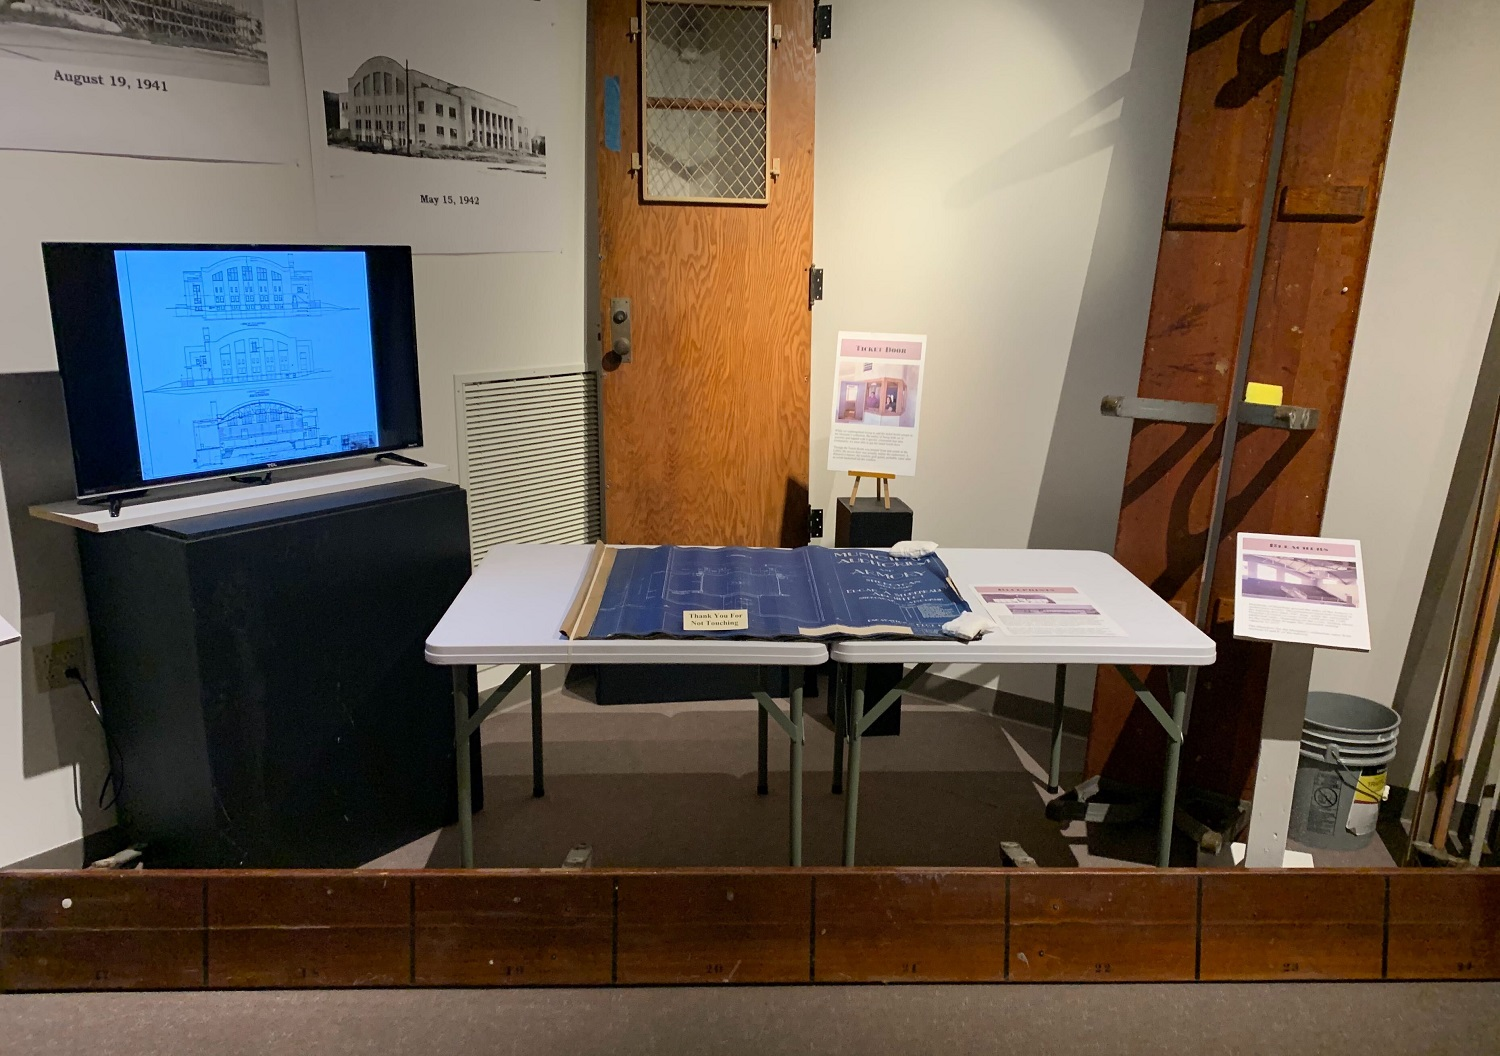 The Sheboygan County Historical Society and Museum preserved items from the Armory to keep its memory alive for future generations, said Executive Director Travis Gross. The building's original blueprint, bench seats and the door to the ticket booth are on display. (Megan Hart/WPR)